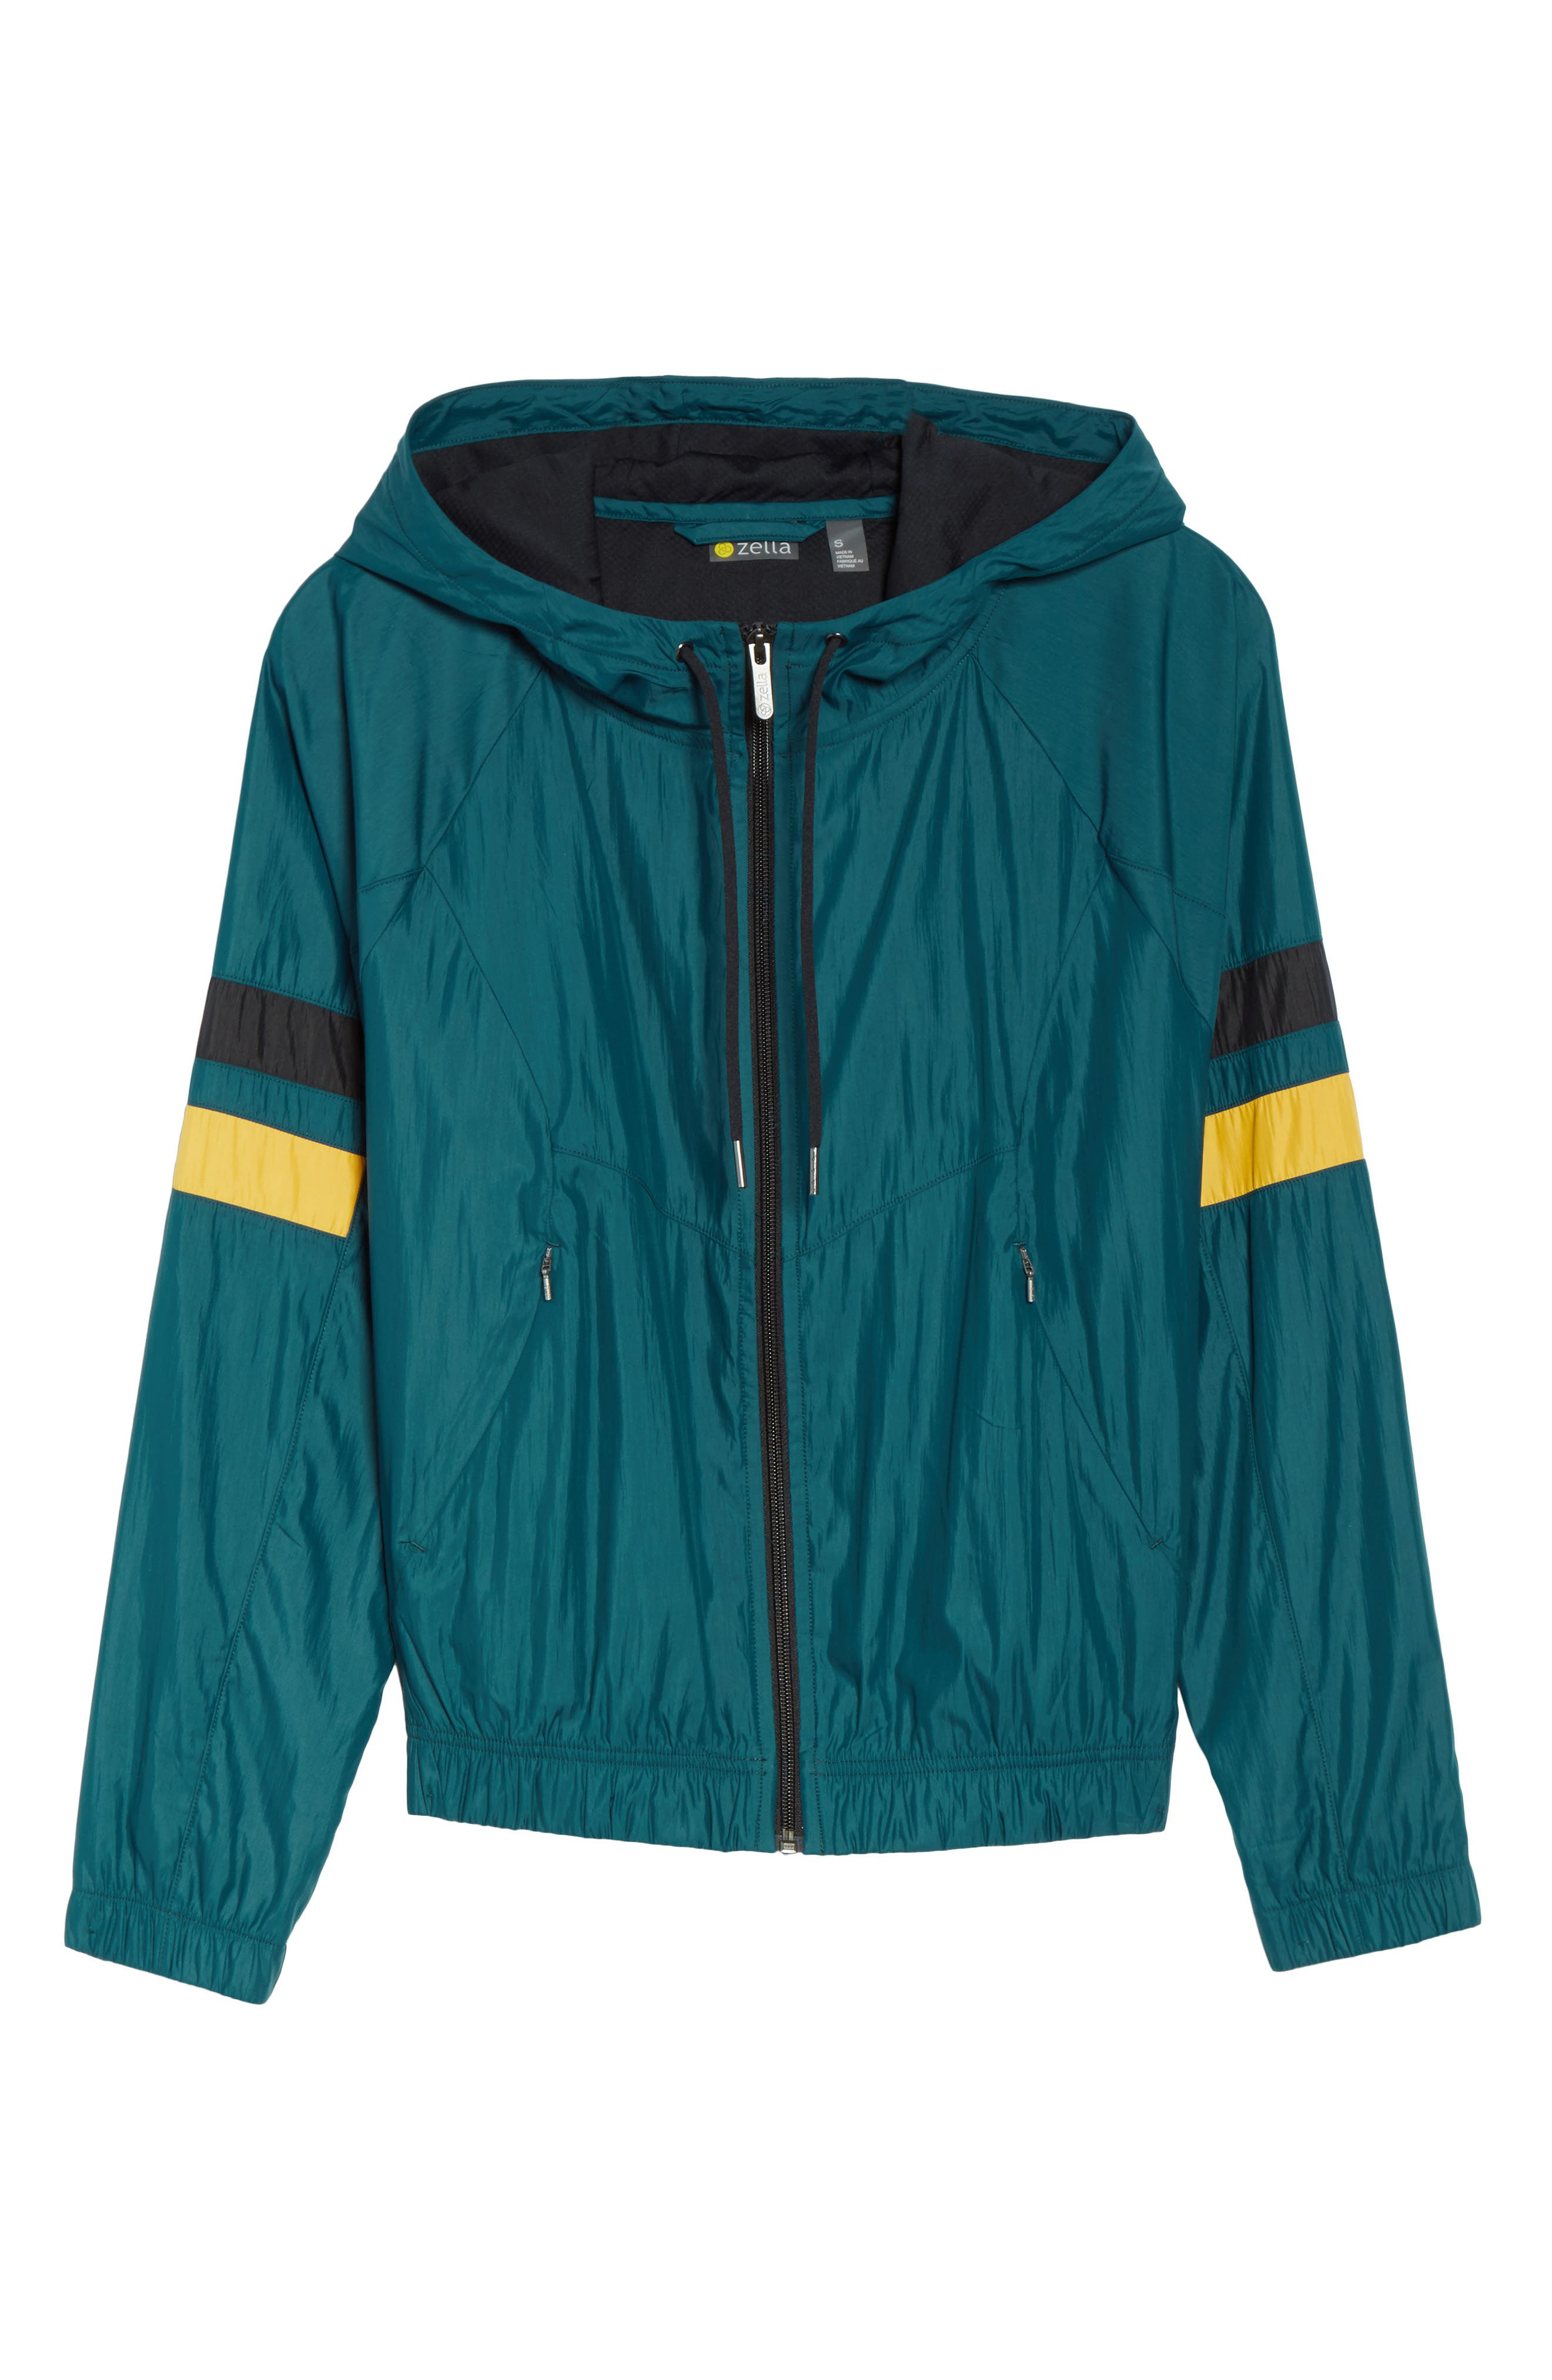 Style Game Colorblock Jacket,                             Alternate thumbnail 5, color,                             449